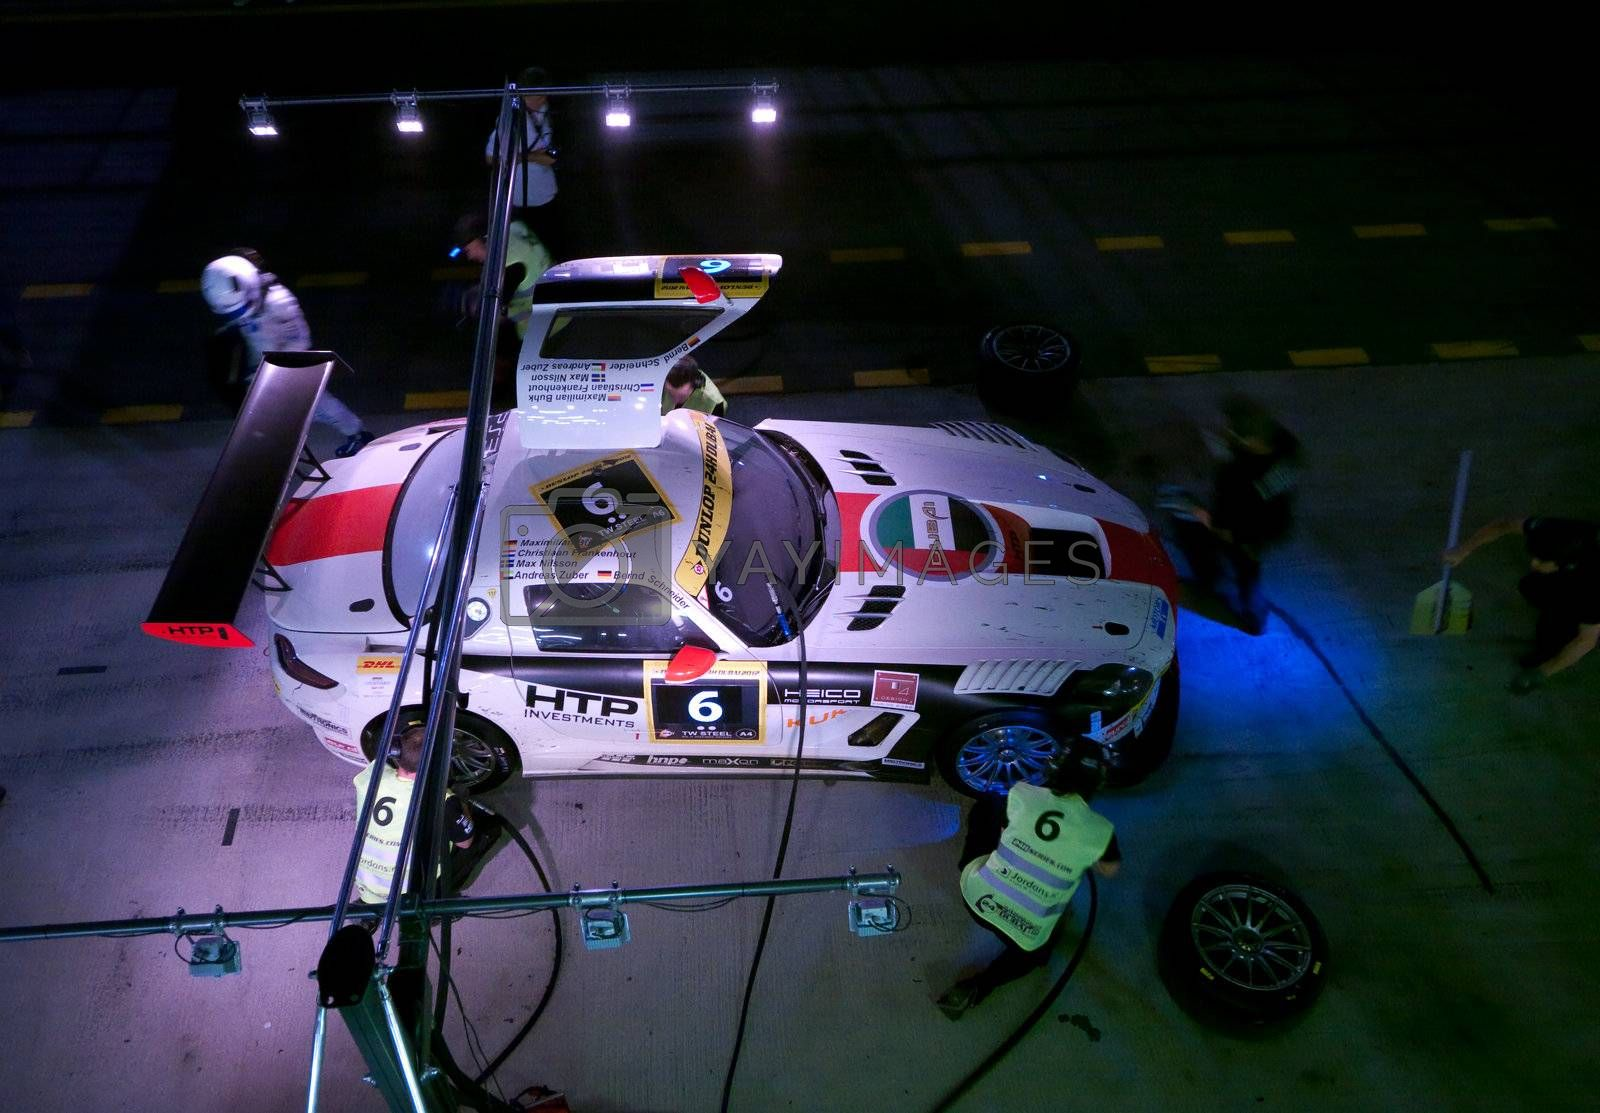 DUBAI - JANUARY 13: Aerial view of car 6, a Mercedes SLS AMG GT3 during pit stop at night at the 2012 Dunlop 24 Hour Race at Dubai Autodrome on January 13, 2012.